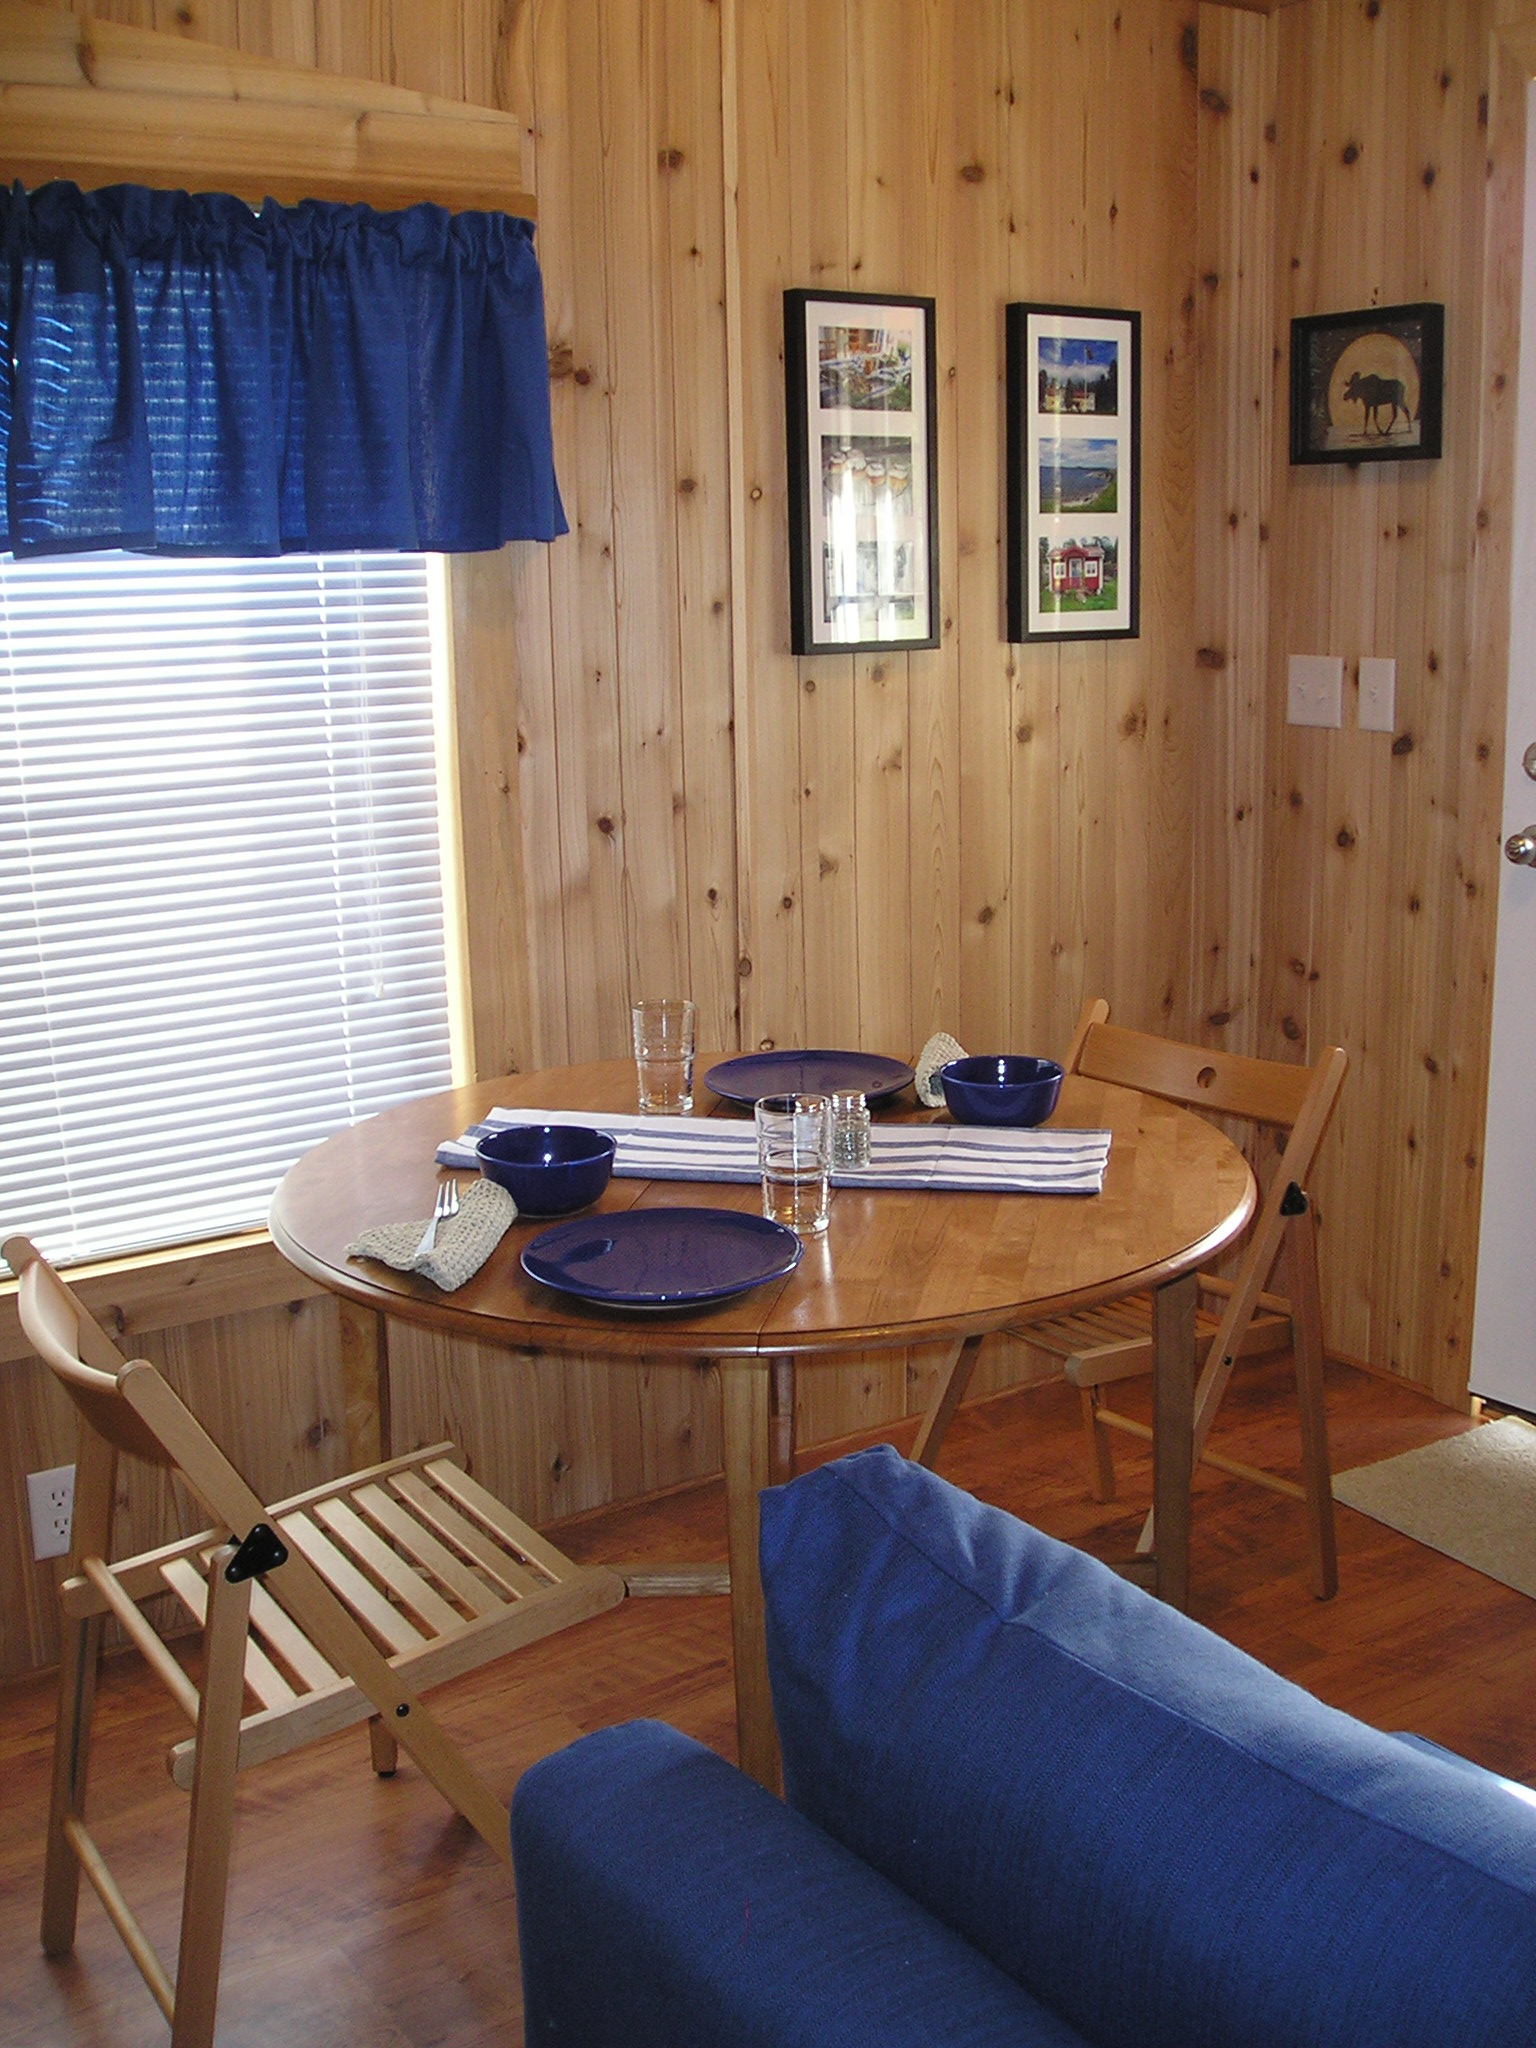 Dining area of Cabin